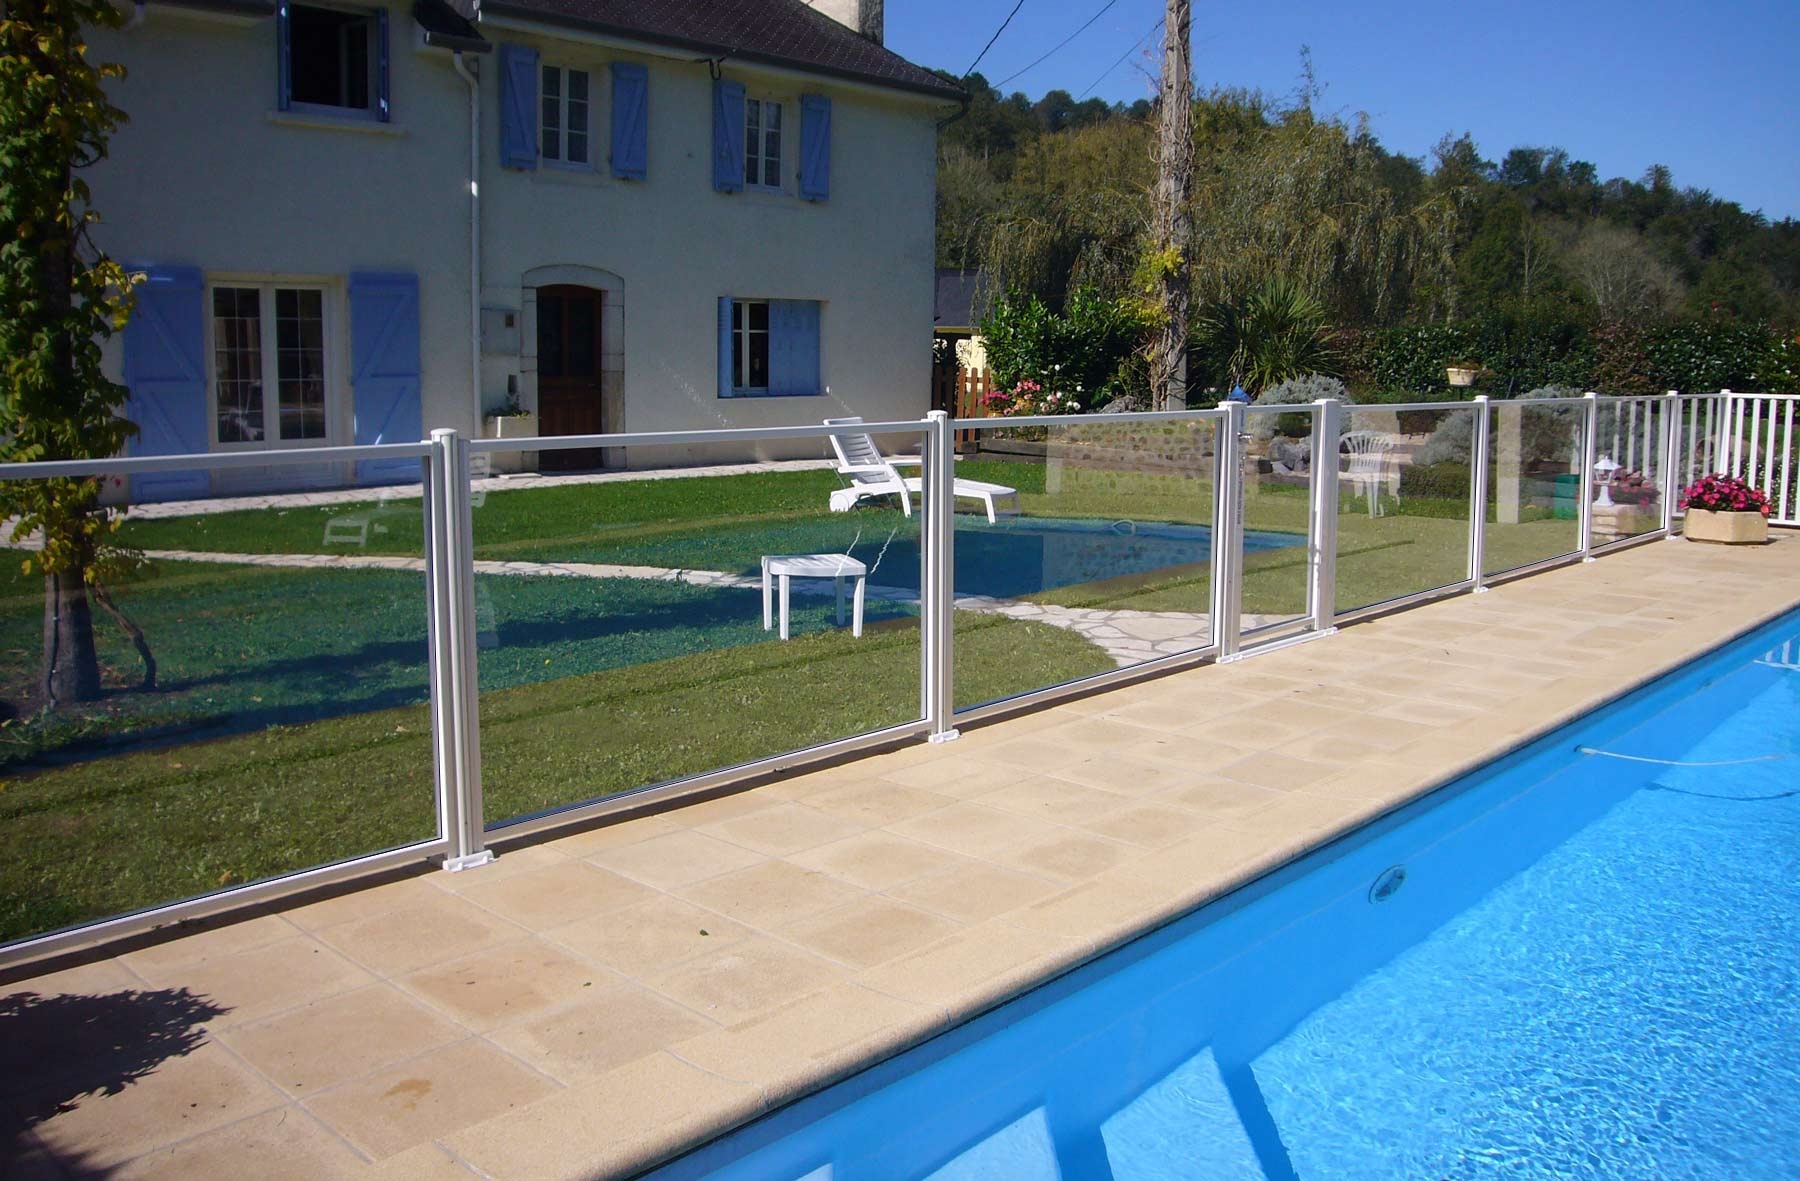 Barriere de securite piscine barri re de piscine s curit for Barriere piscine plexiglass